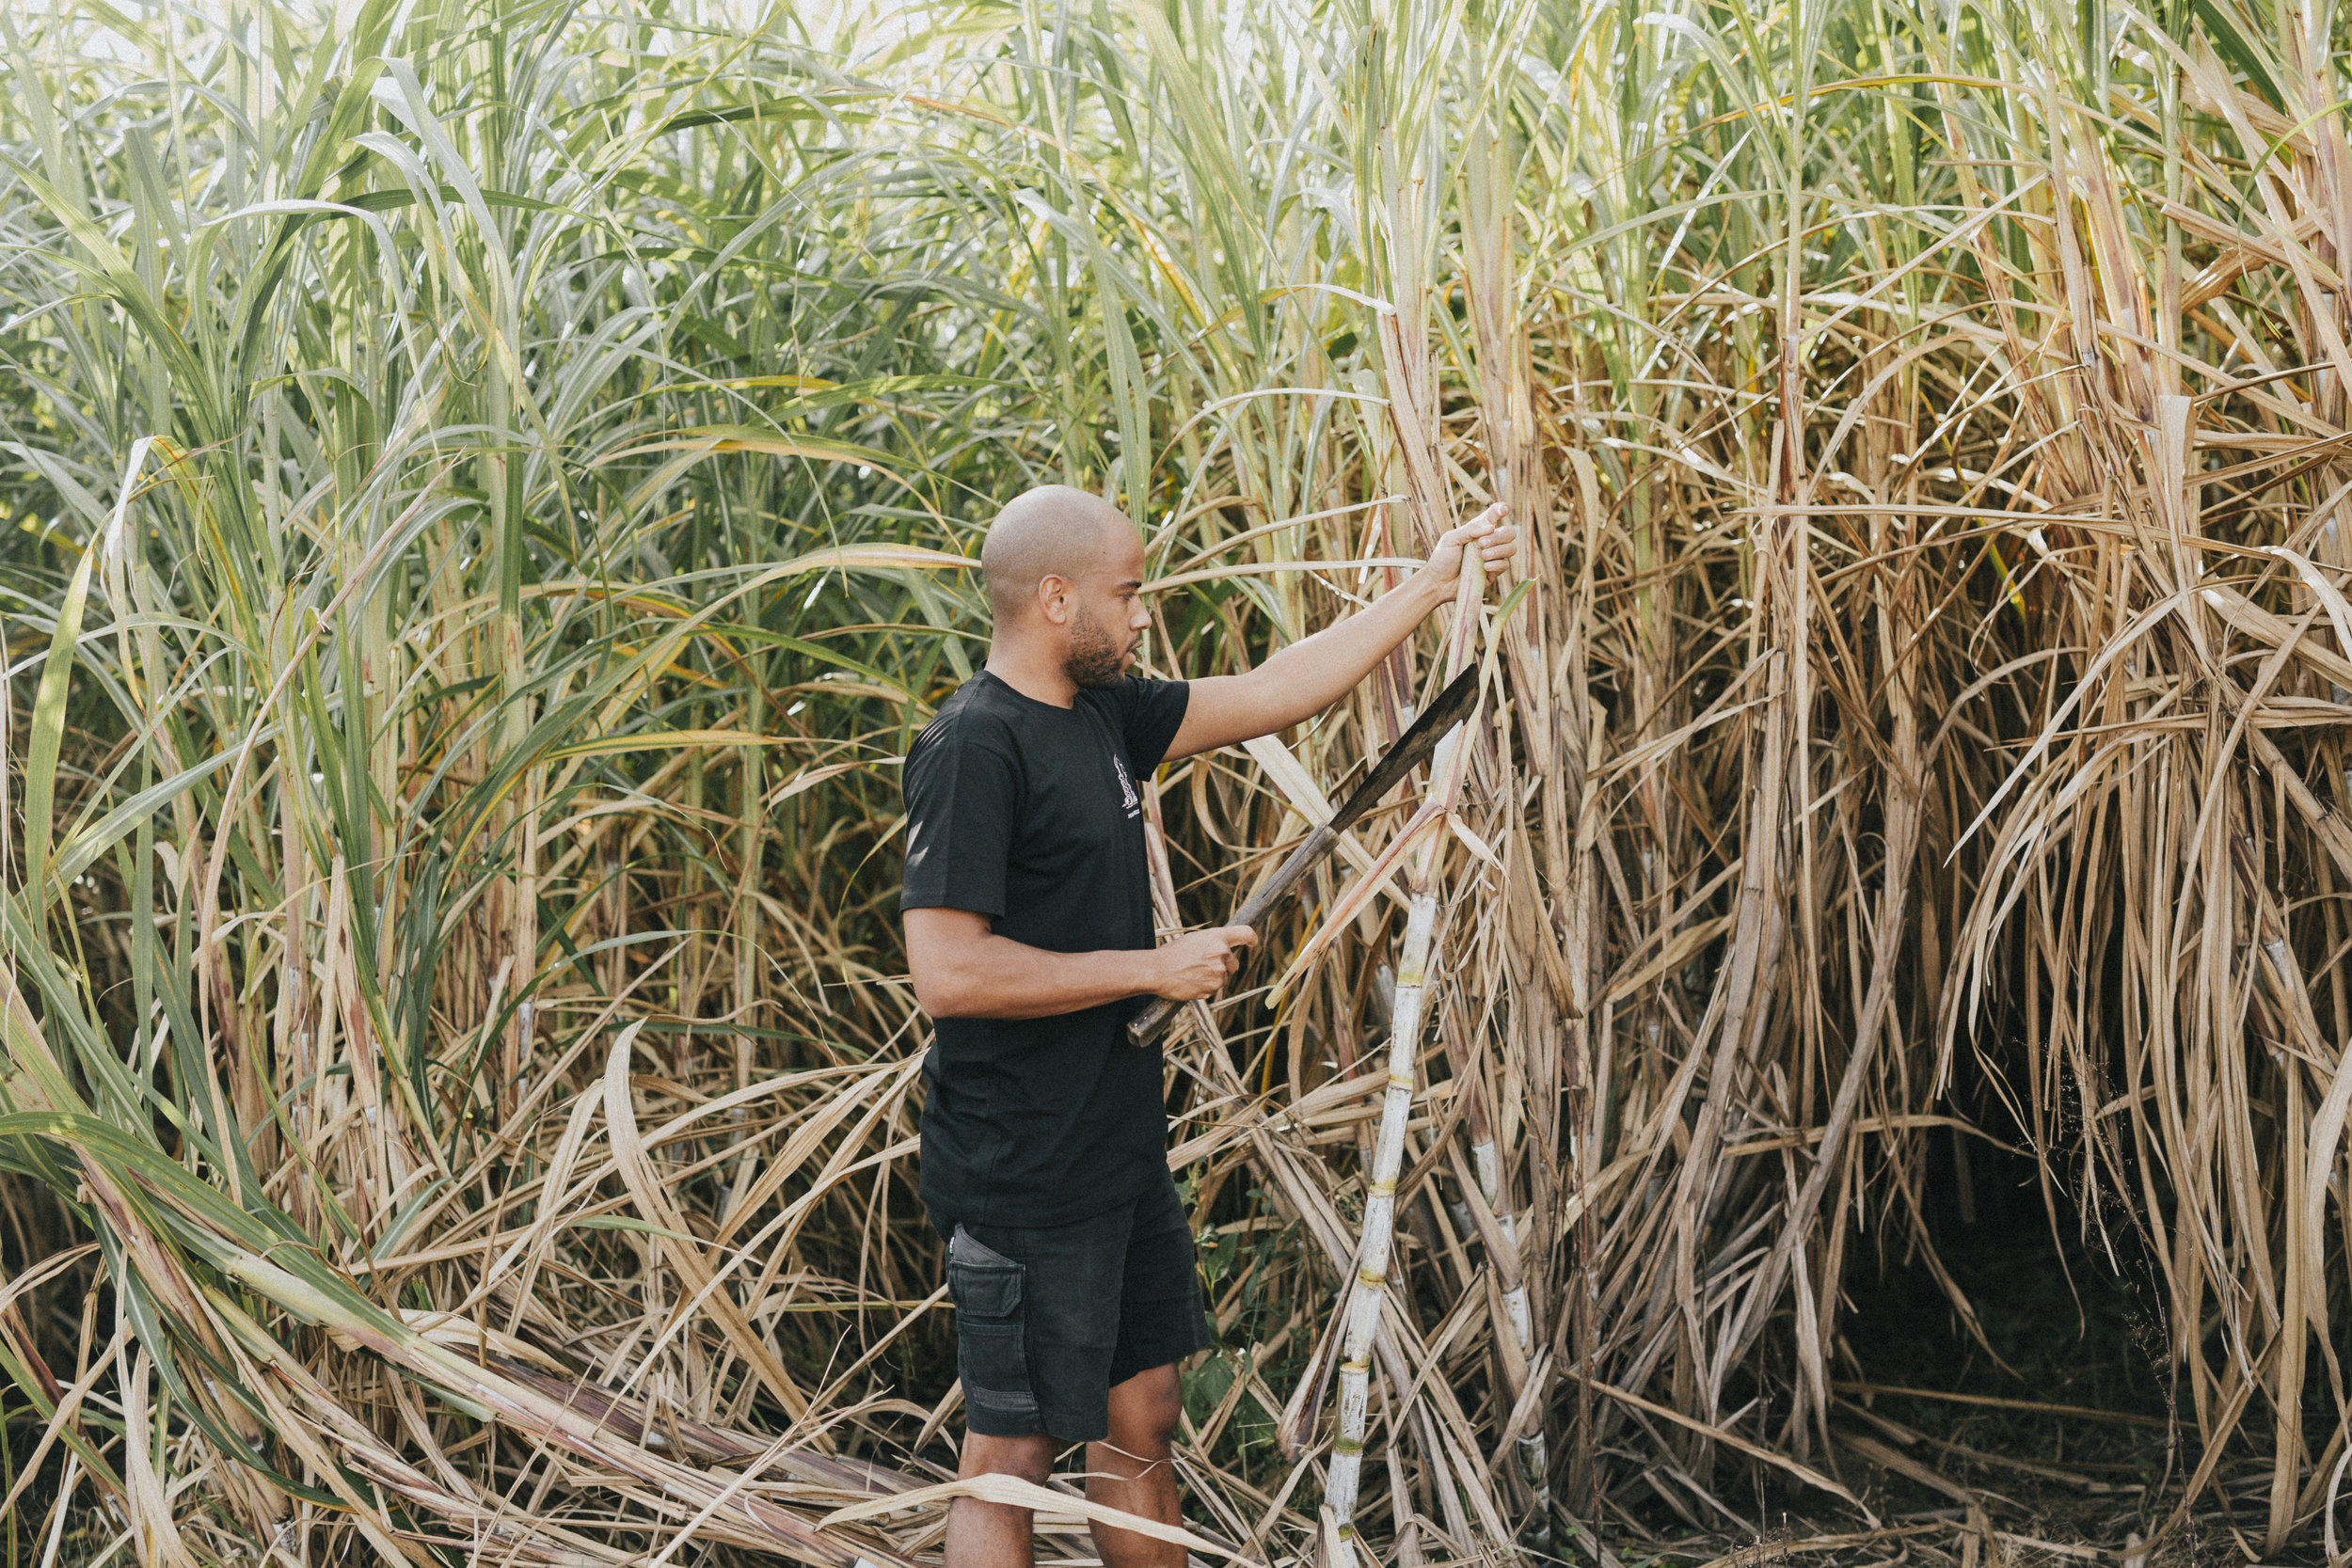 Distiller Quentin in the cane field